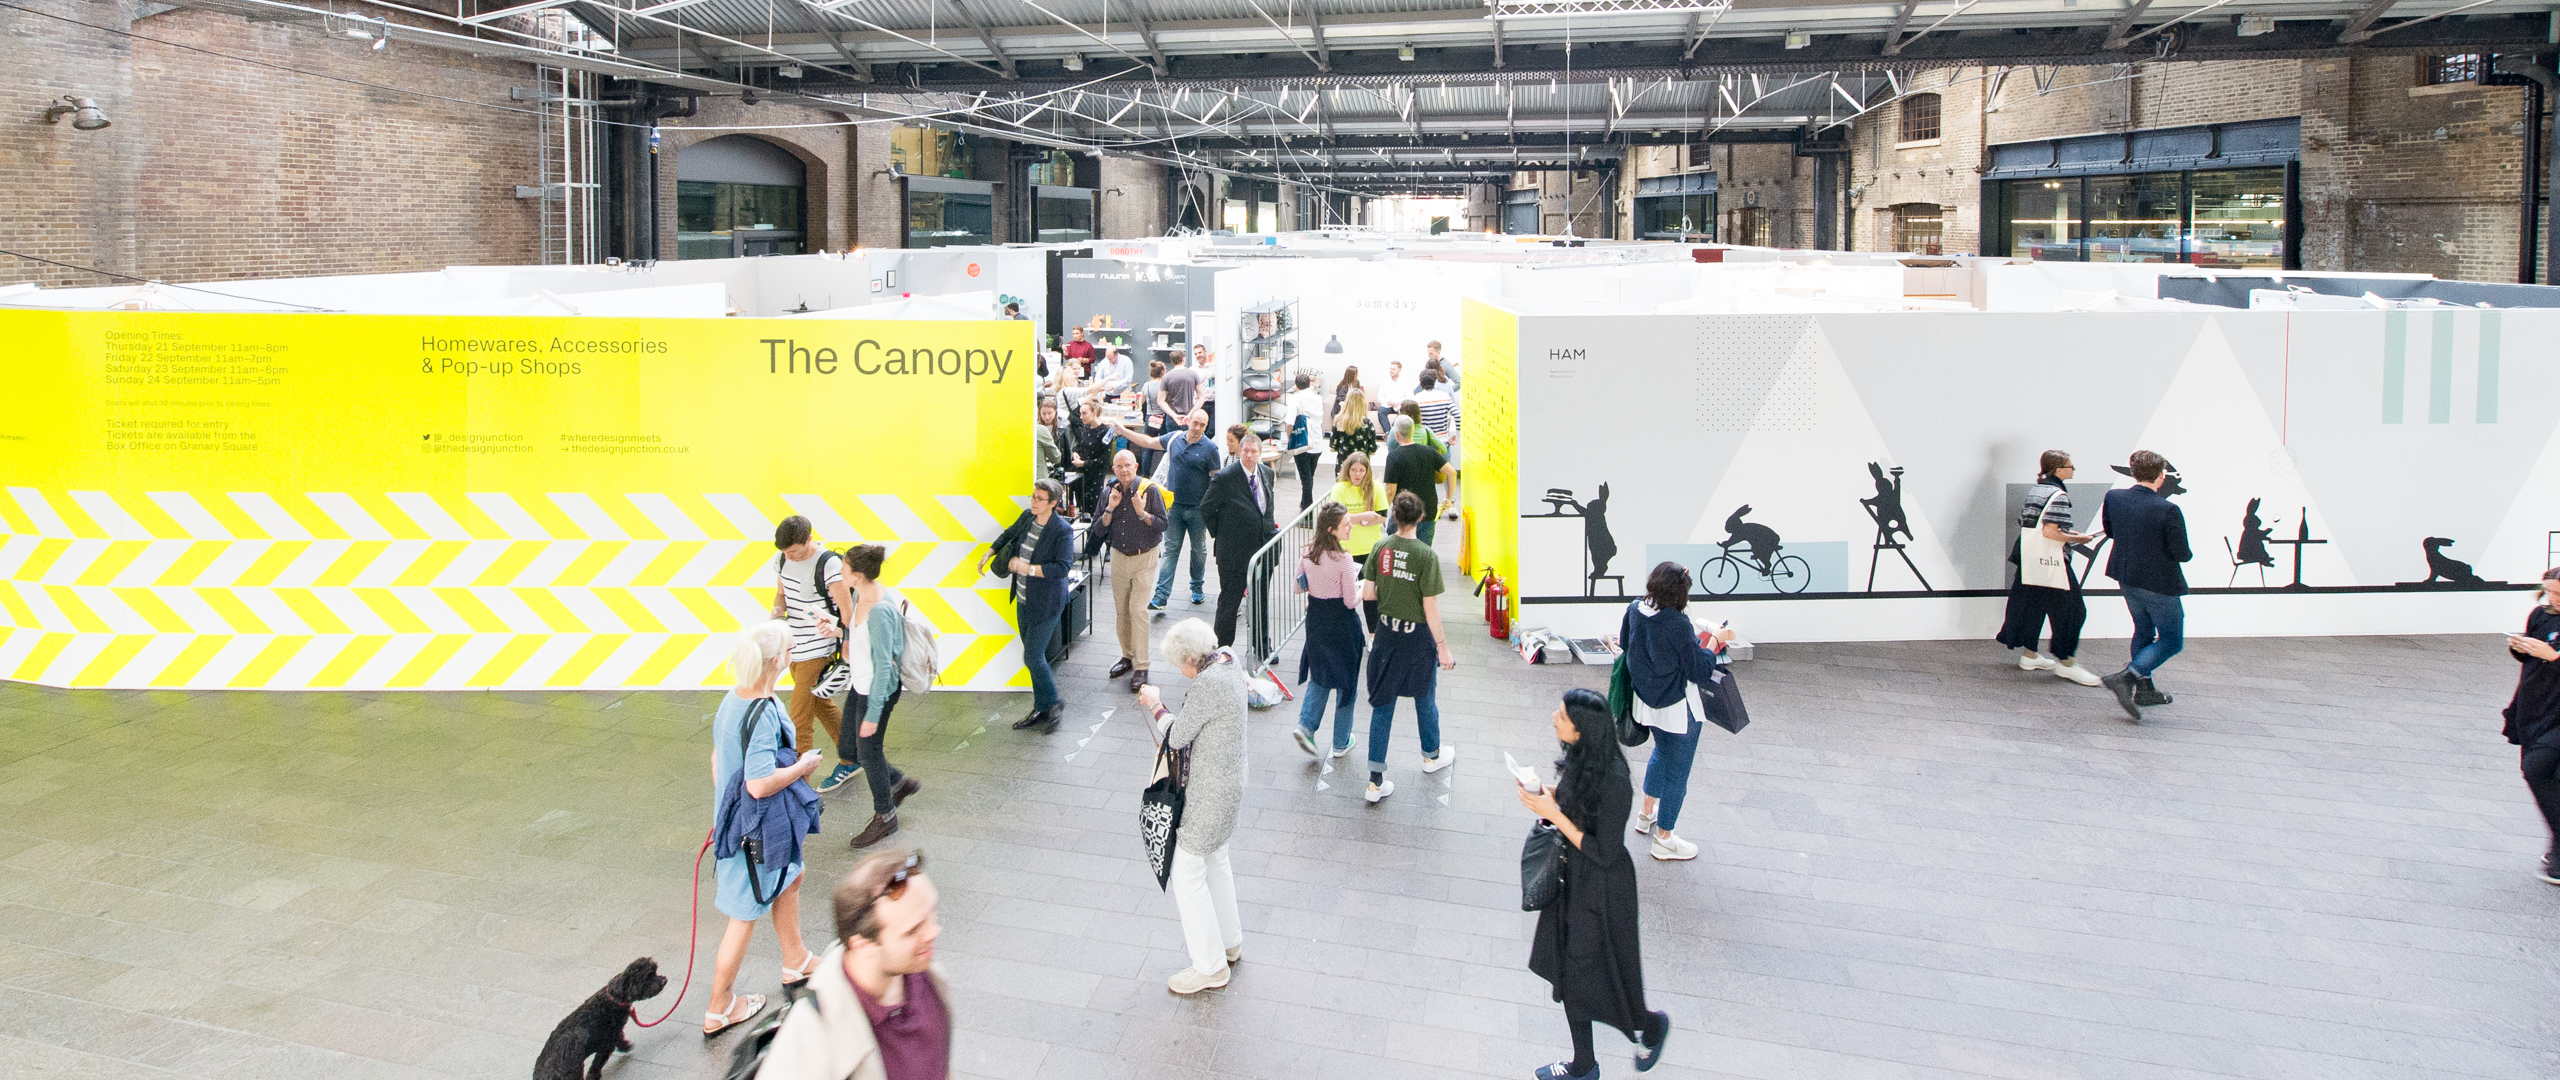 designjunction Photo Gallery